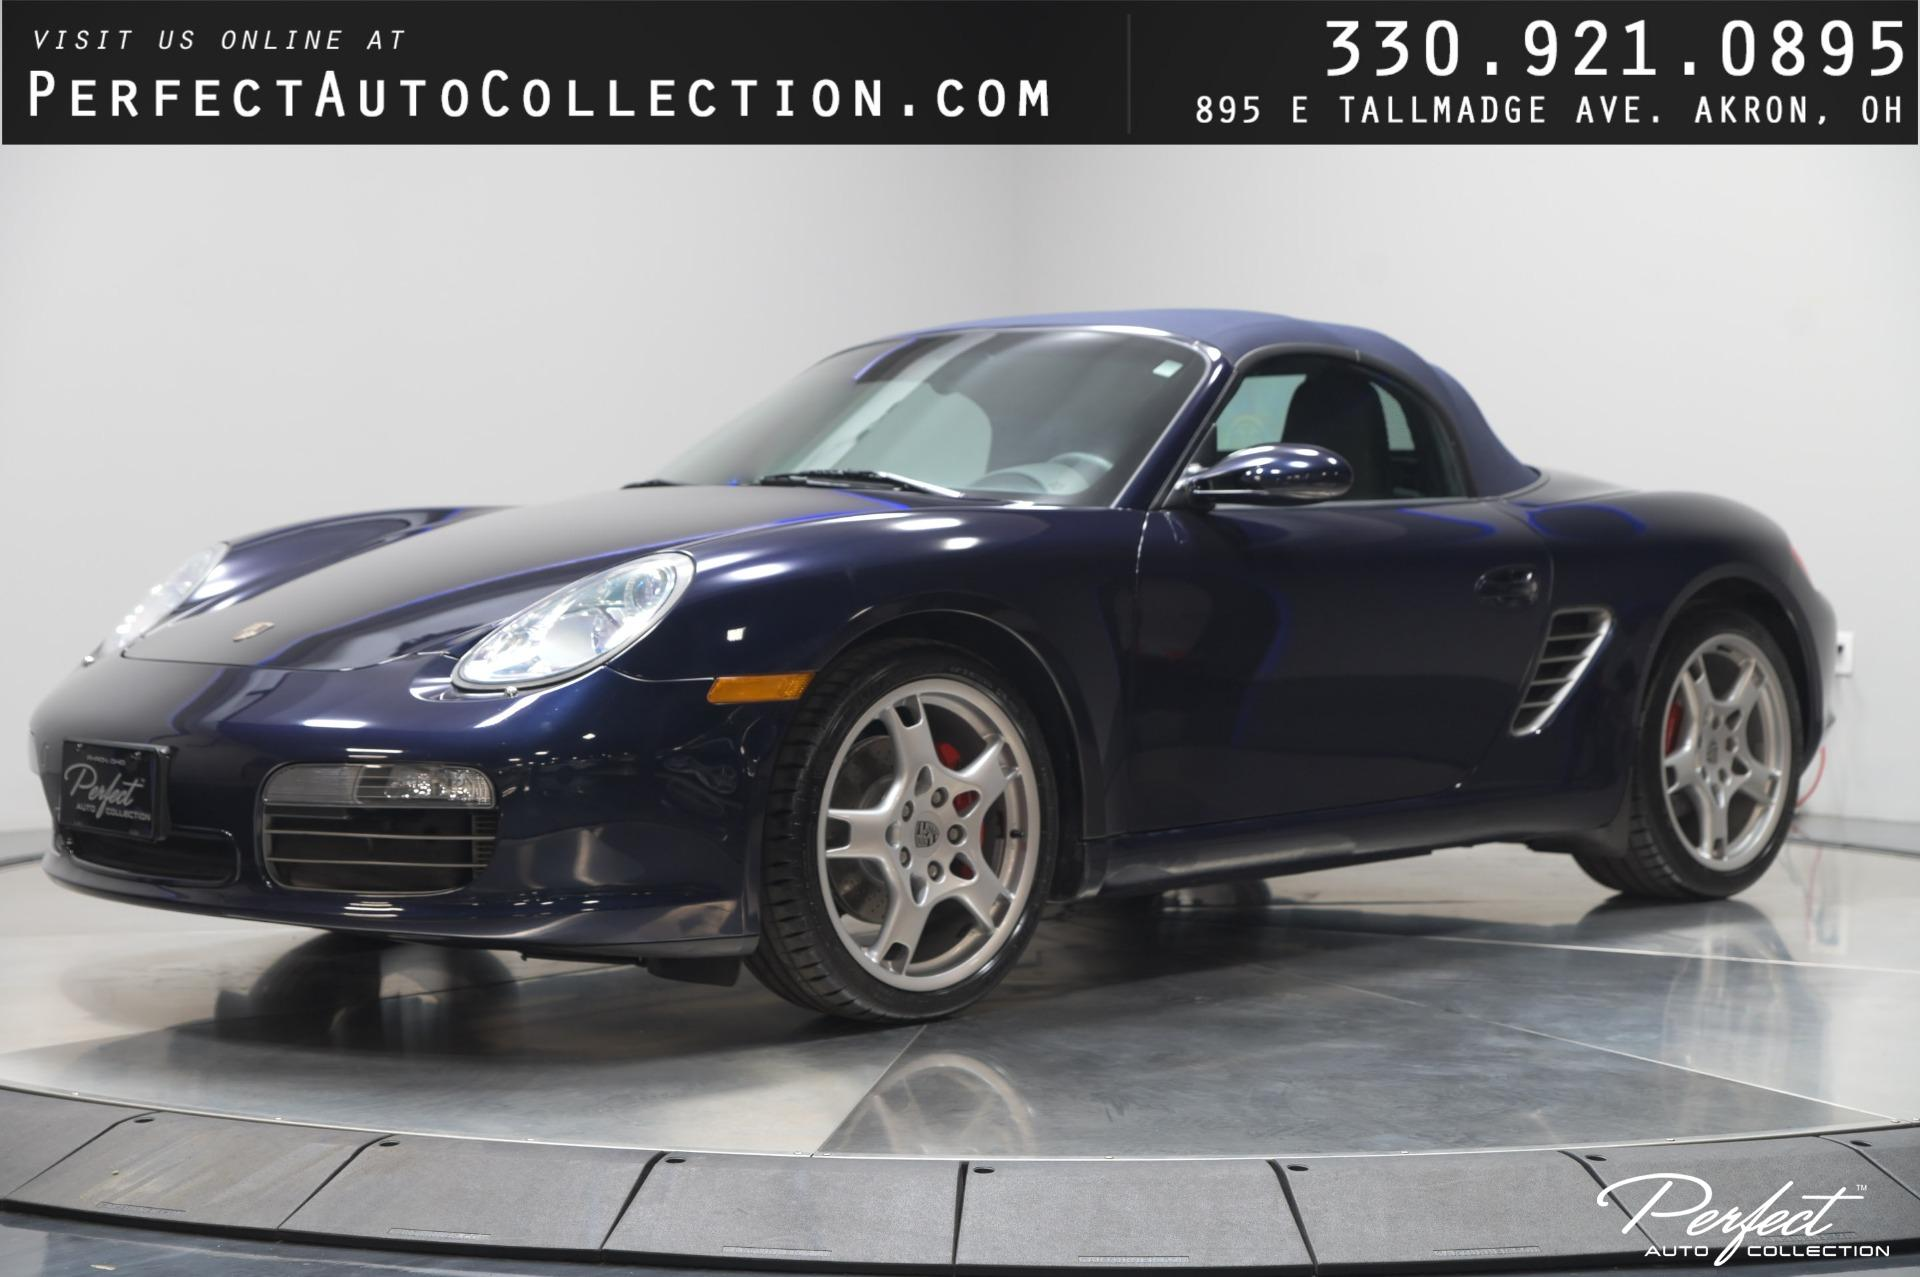 Used 2005 Porsche Boxster S for sale $24,495 at Perfect Auto Collection in Akron OH 44310 1